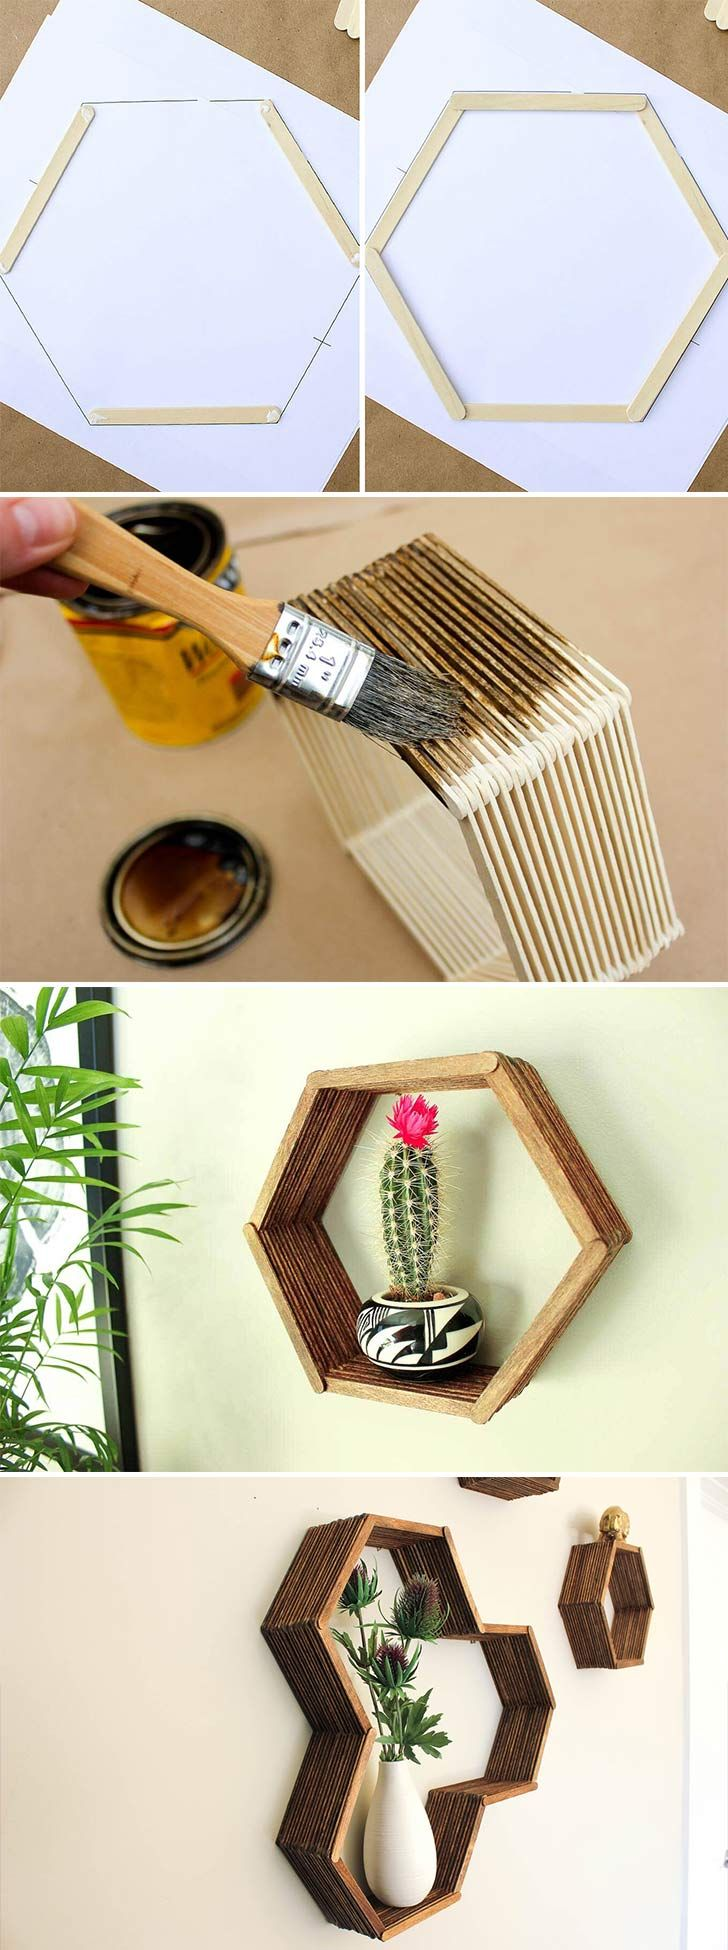 Elegant 40 Amazing DIY Home Decor Ideas That Wonu0027t Look DIYed   Page 5 Of 40 Part 20